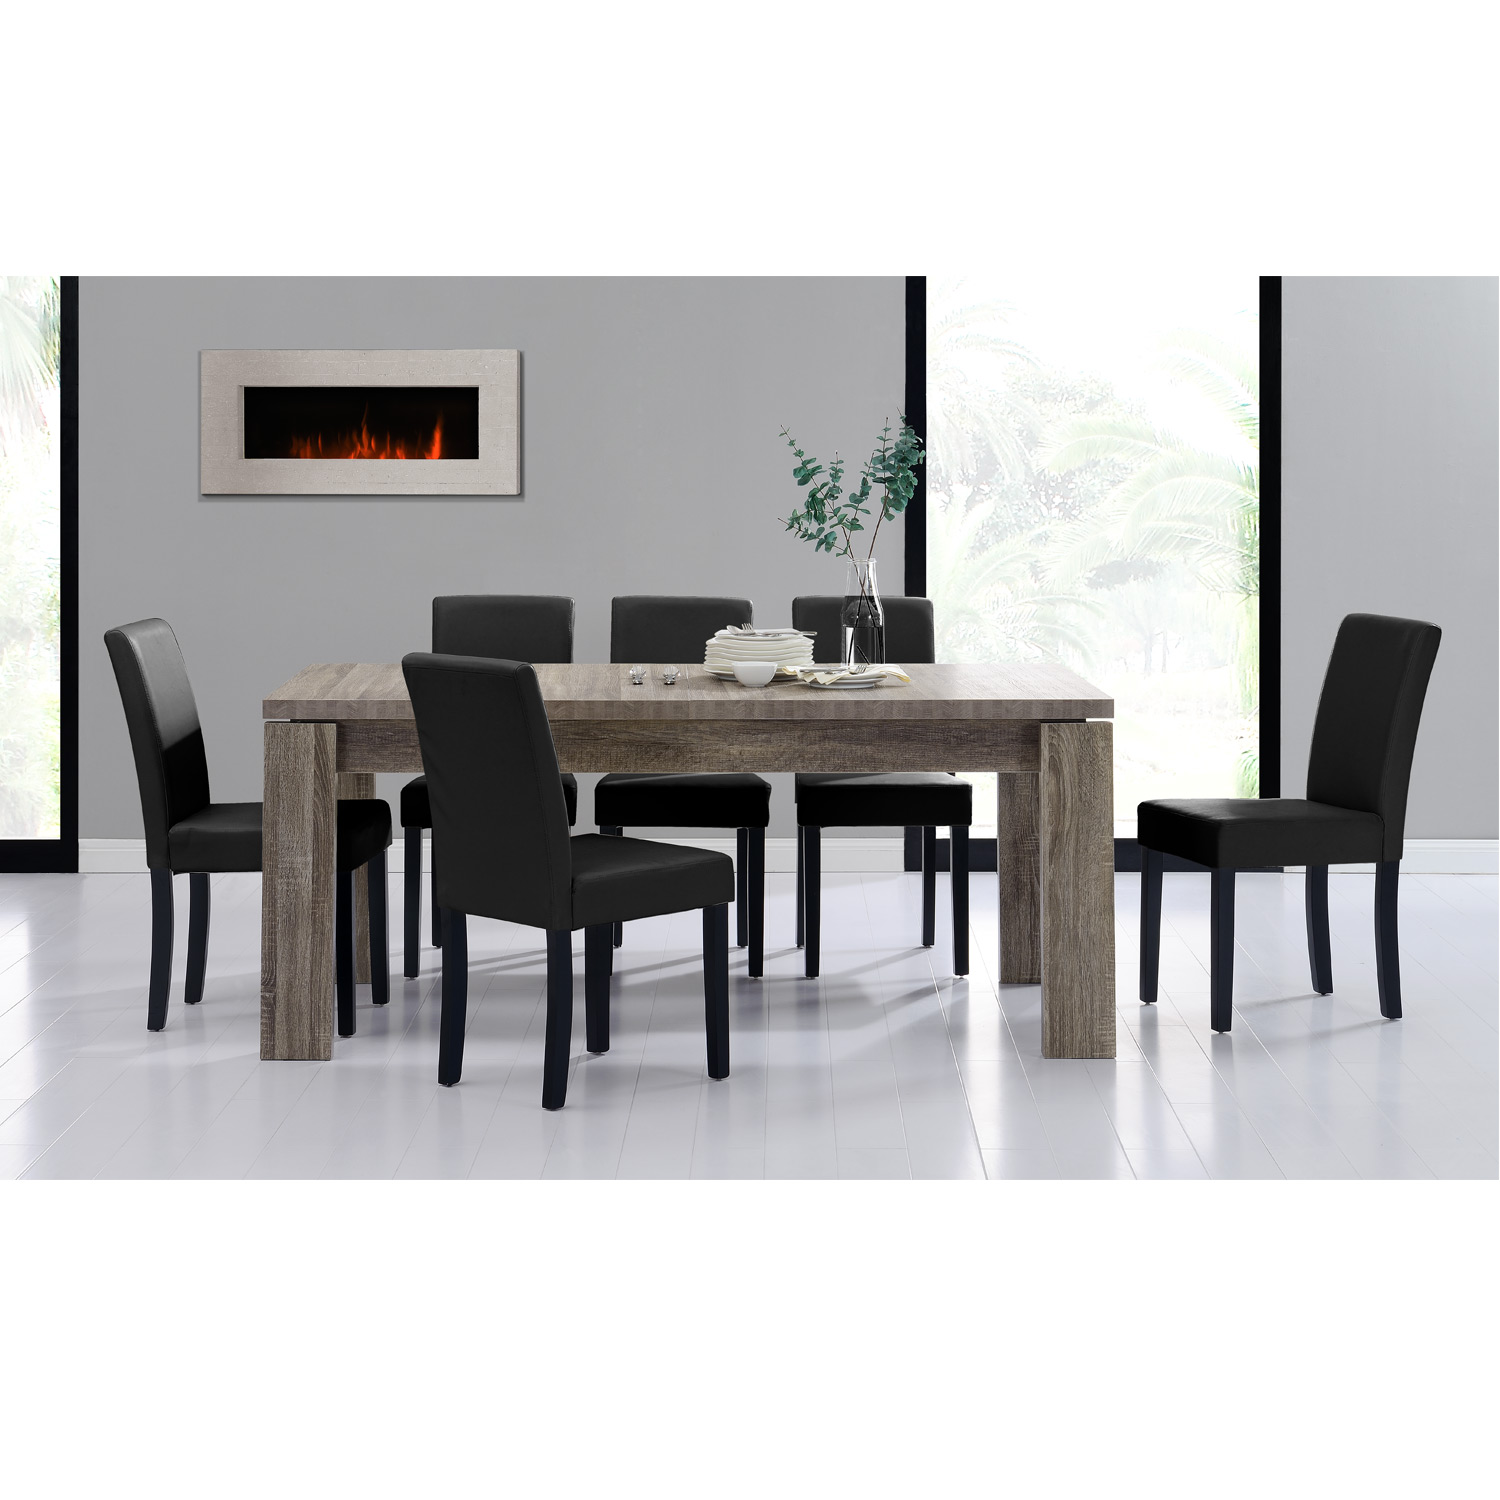 esstisch helsinki 170x79 esszimmertisch eiche wei wohnzimmer tisch ebay. Black Bedroom Furniture Sets. Home Design Ideas